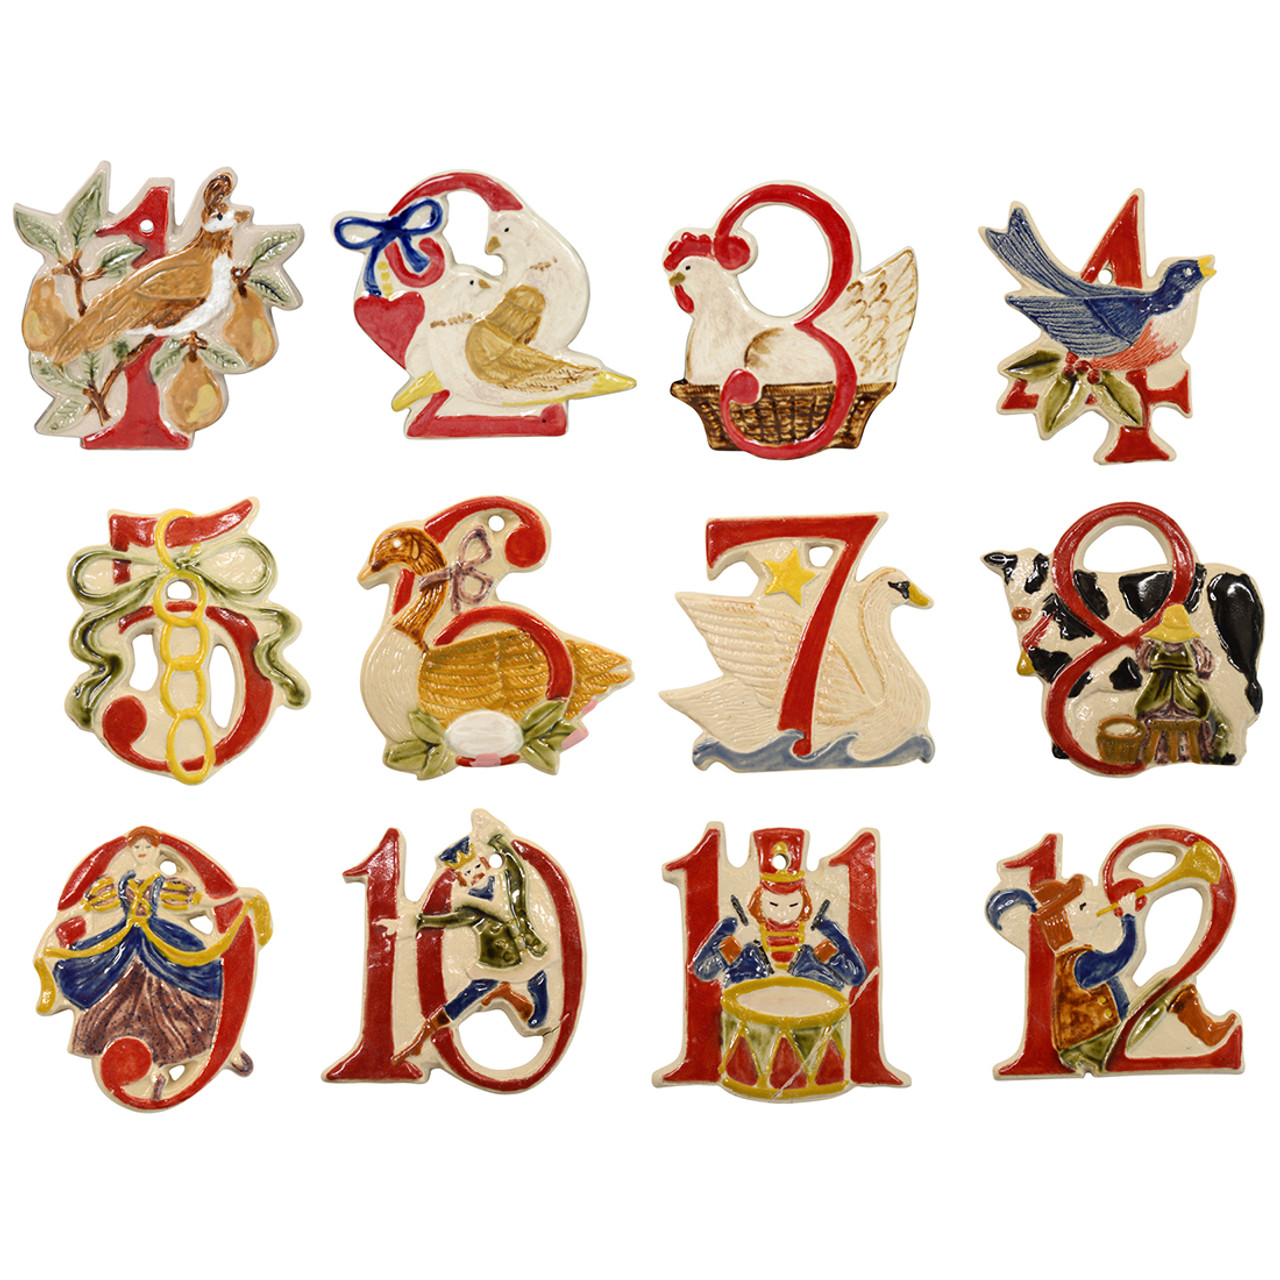 12 days of christmas stoneware s 2016 release of 12 days of christmas [ 1100 x 1100 Pixel ]